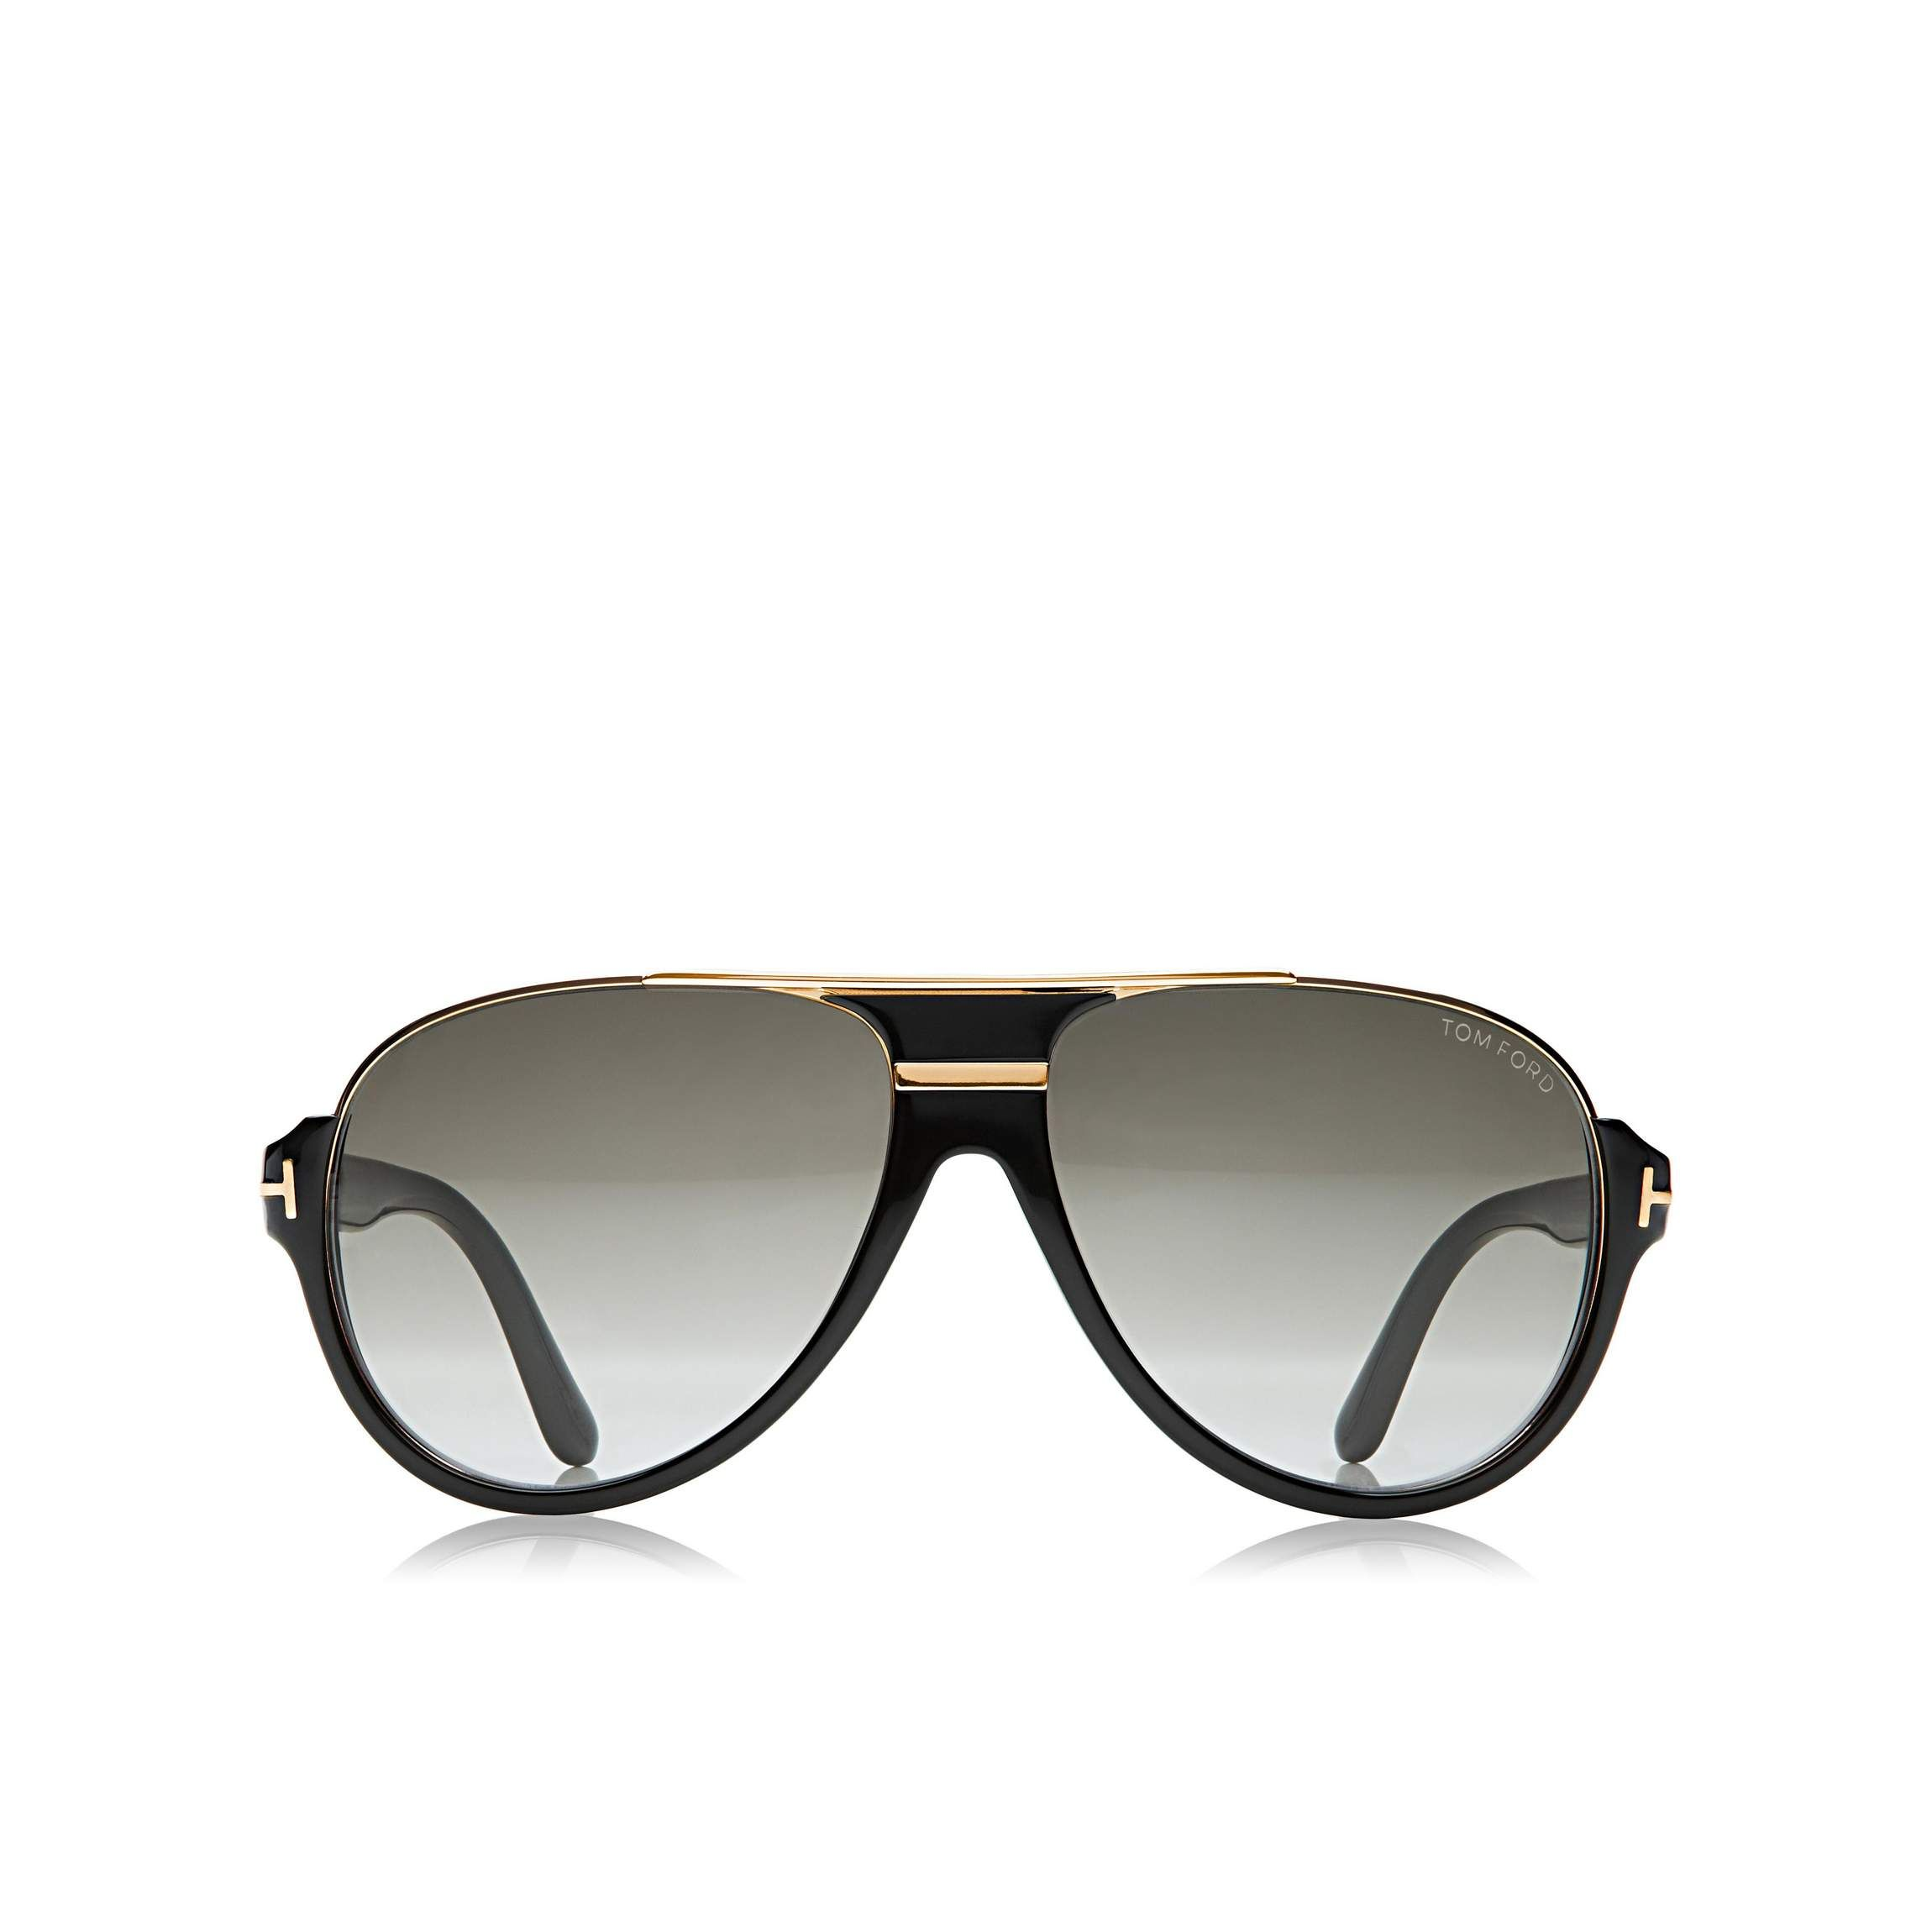 c61e8c842c Vintage acetate aviator sunglasses with shiny metal insert along front top  edge and signature Tom Ford